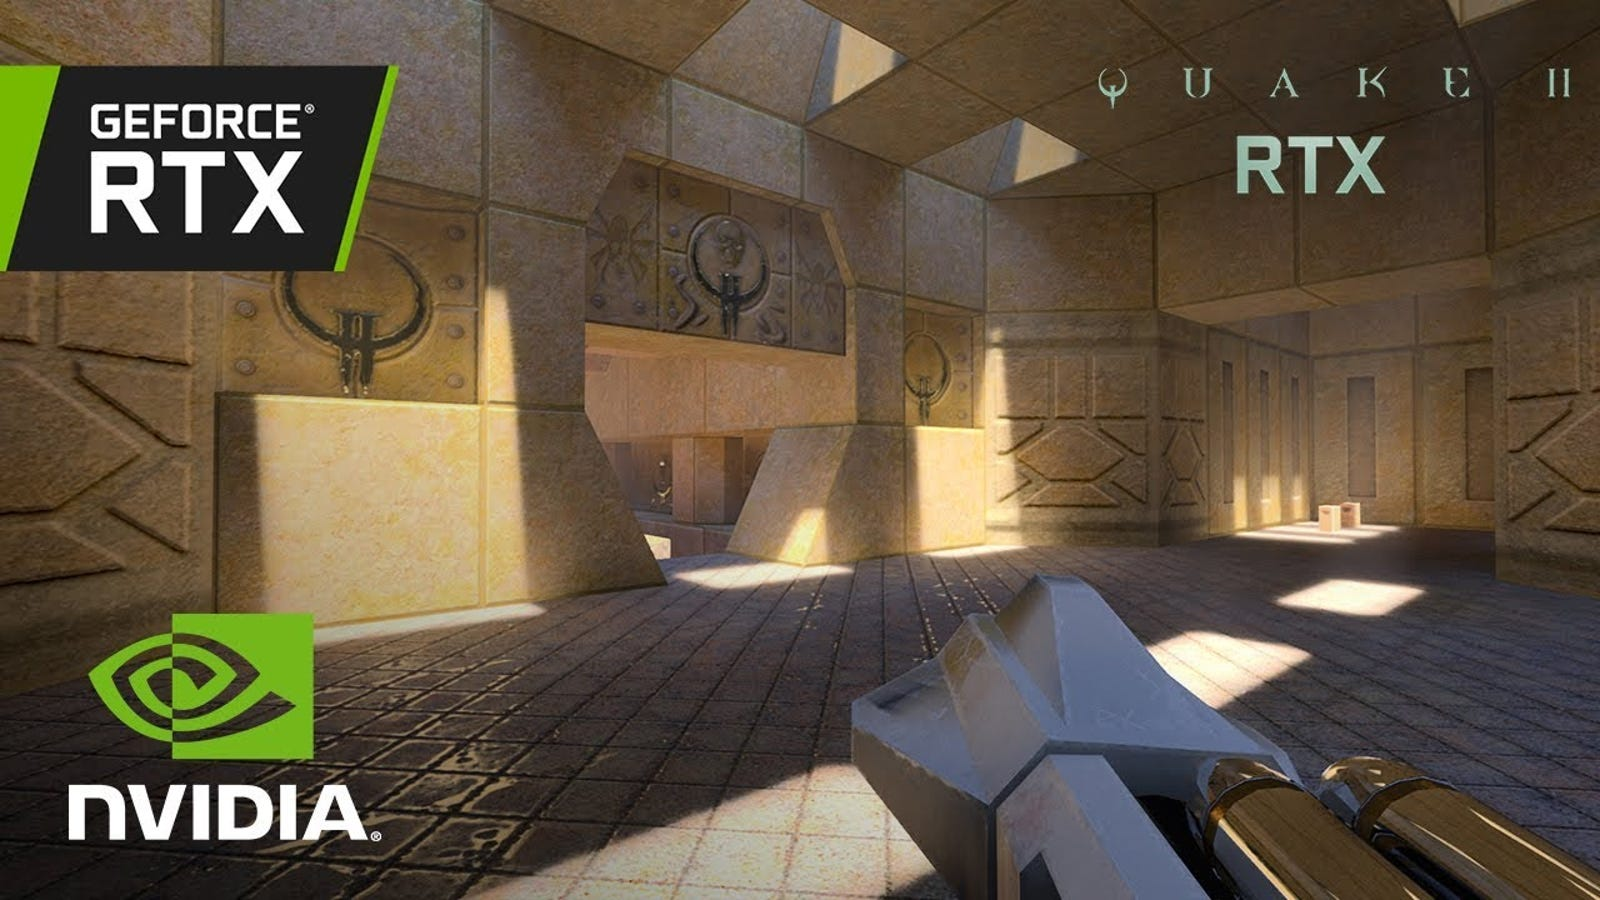 How to Get the Beautiful 'Quake II RTX' Re-release for Free